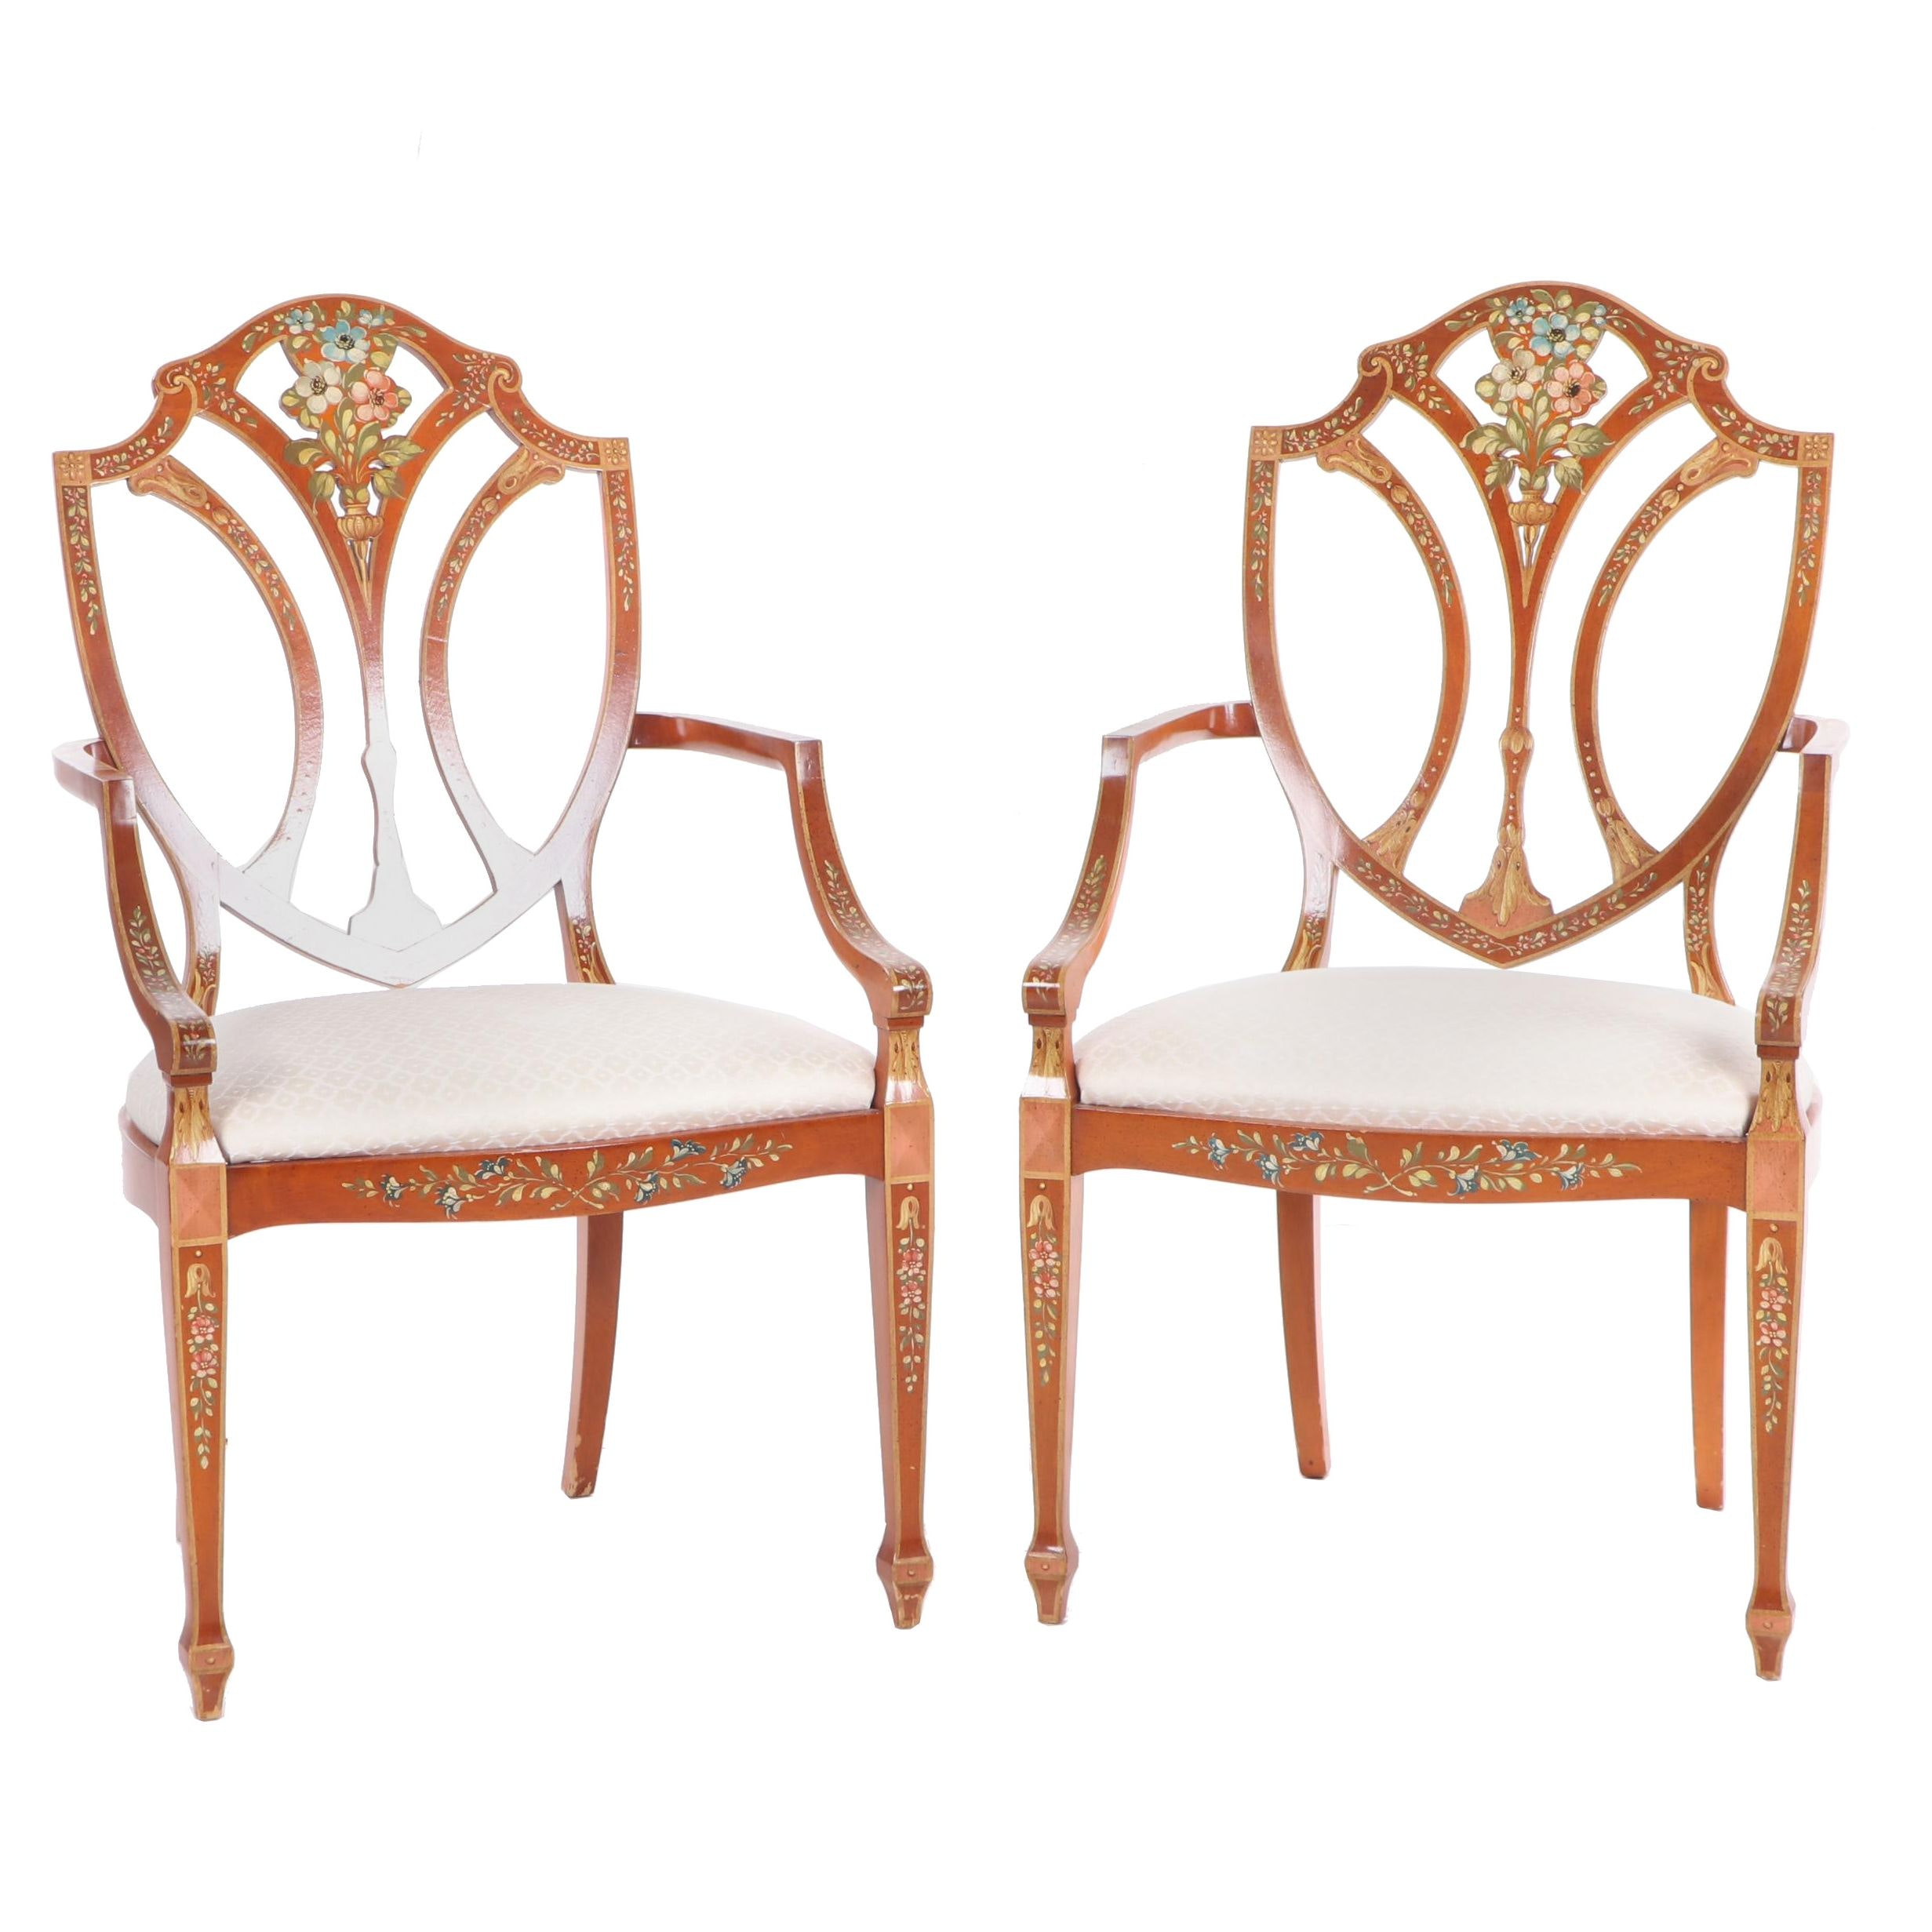 Contemporary Paint Decorated Hepplewhite Style Armchairs, 20th Century